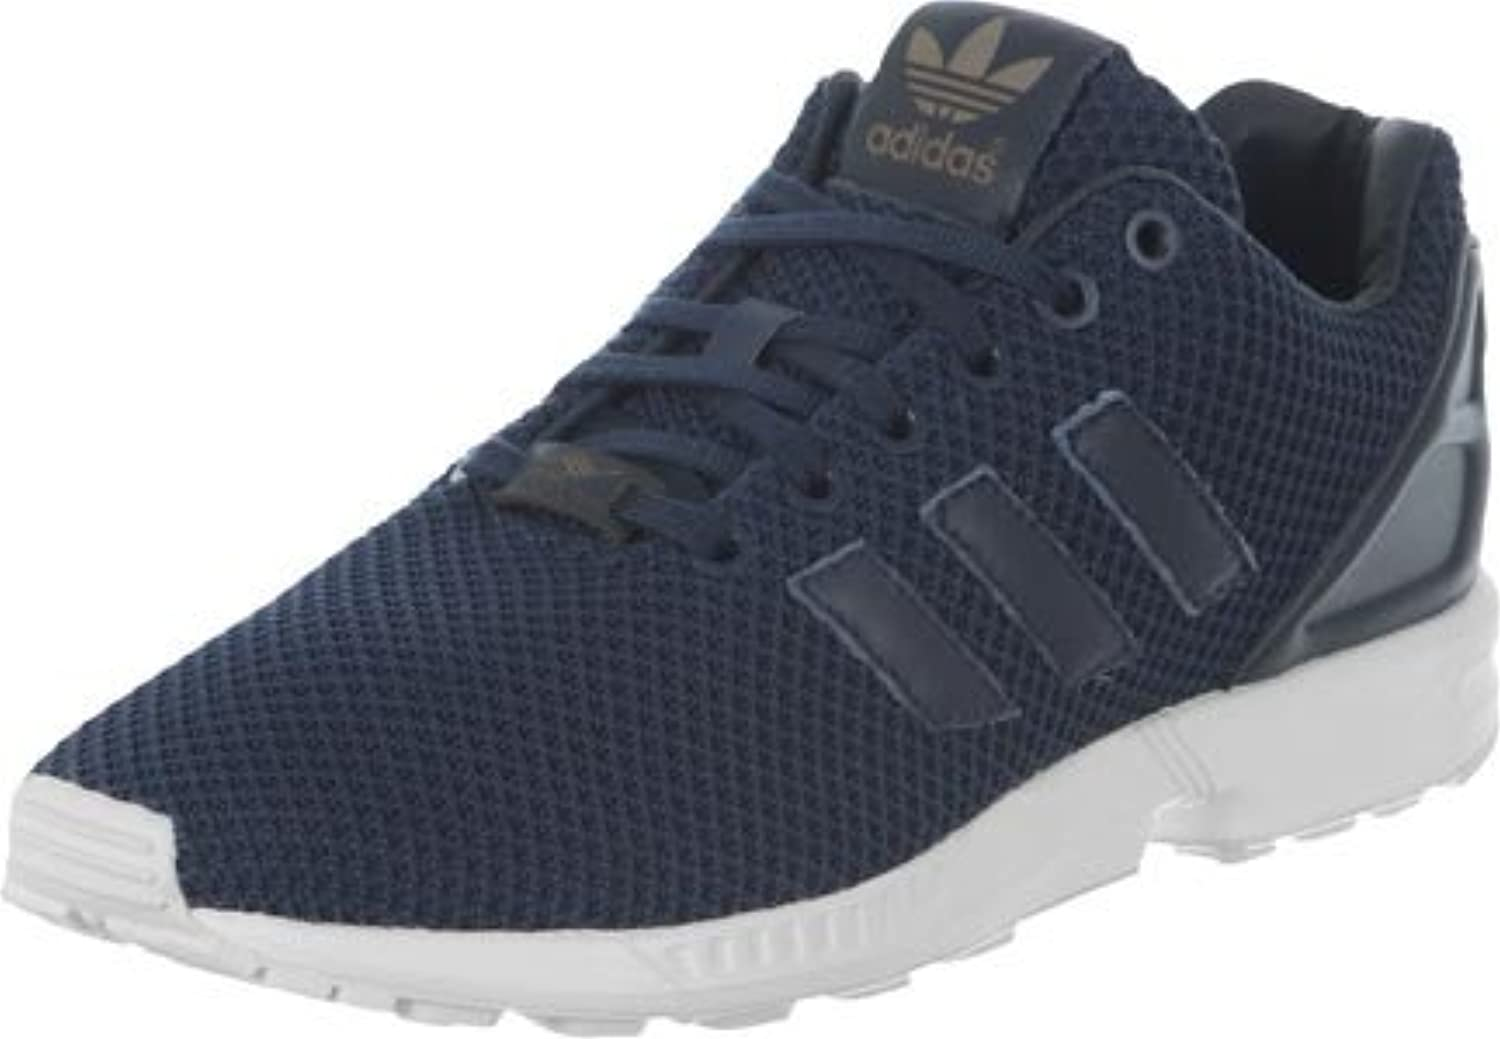 Adidas Zx Flux Trainers Blue 4 Child UK